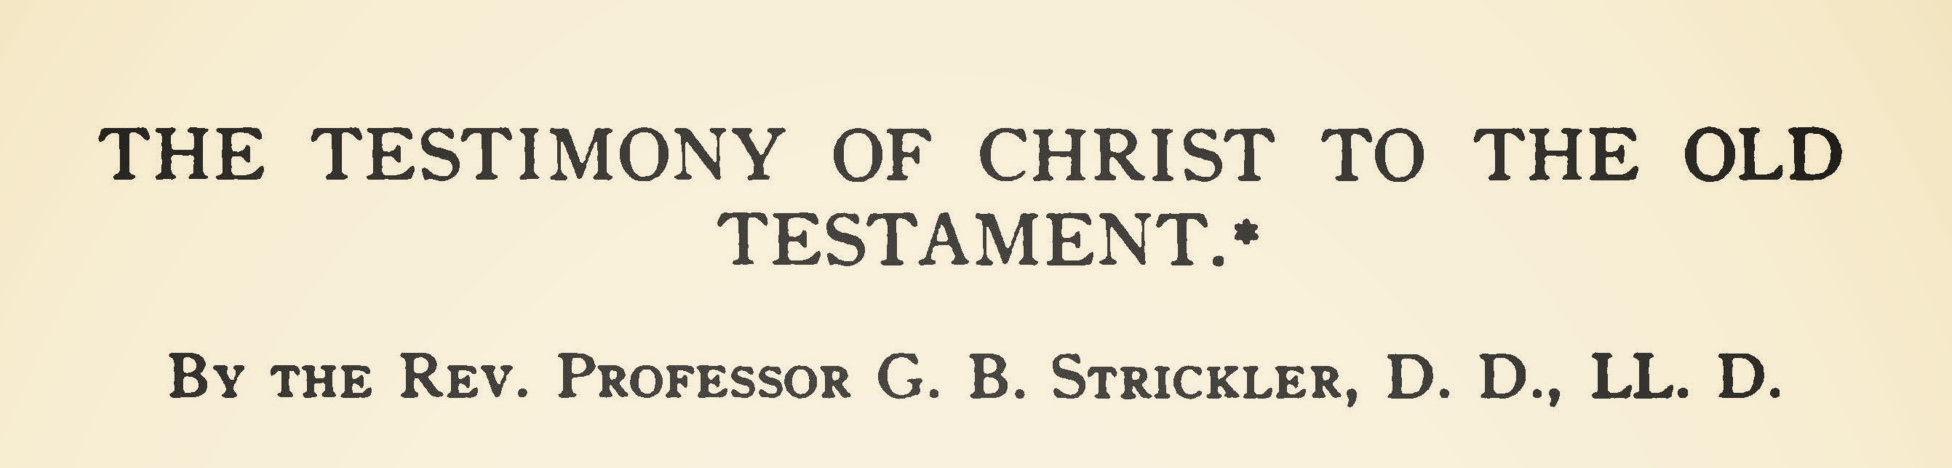 Strickler, Givens Brown, The Testimony of Christ to the Old Testament Title Page.jpg